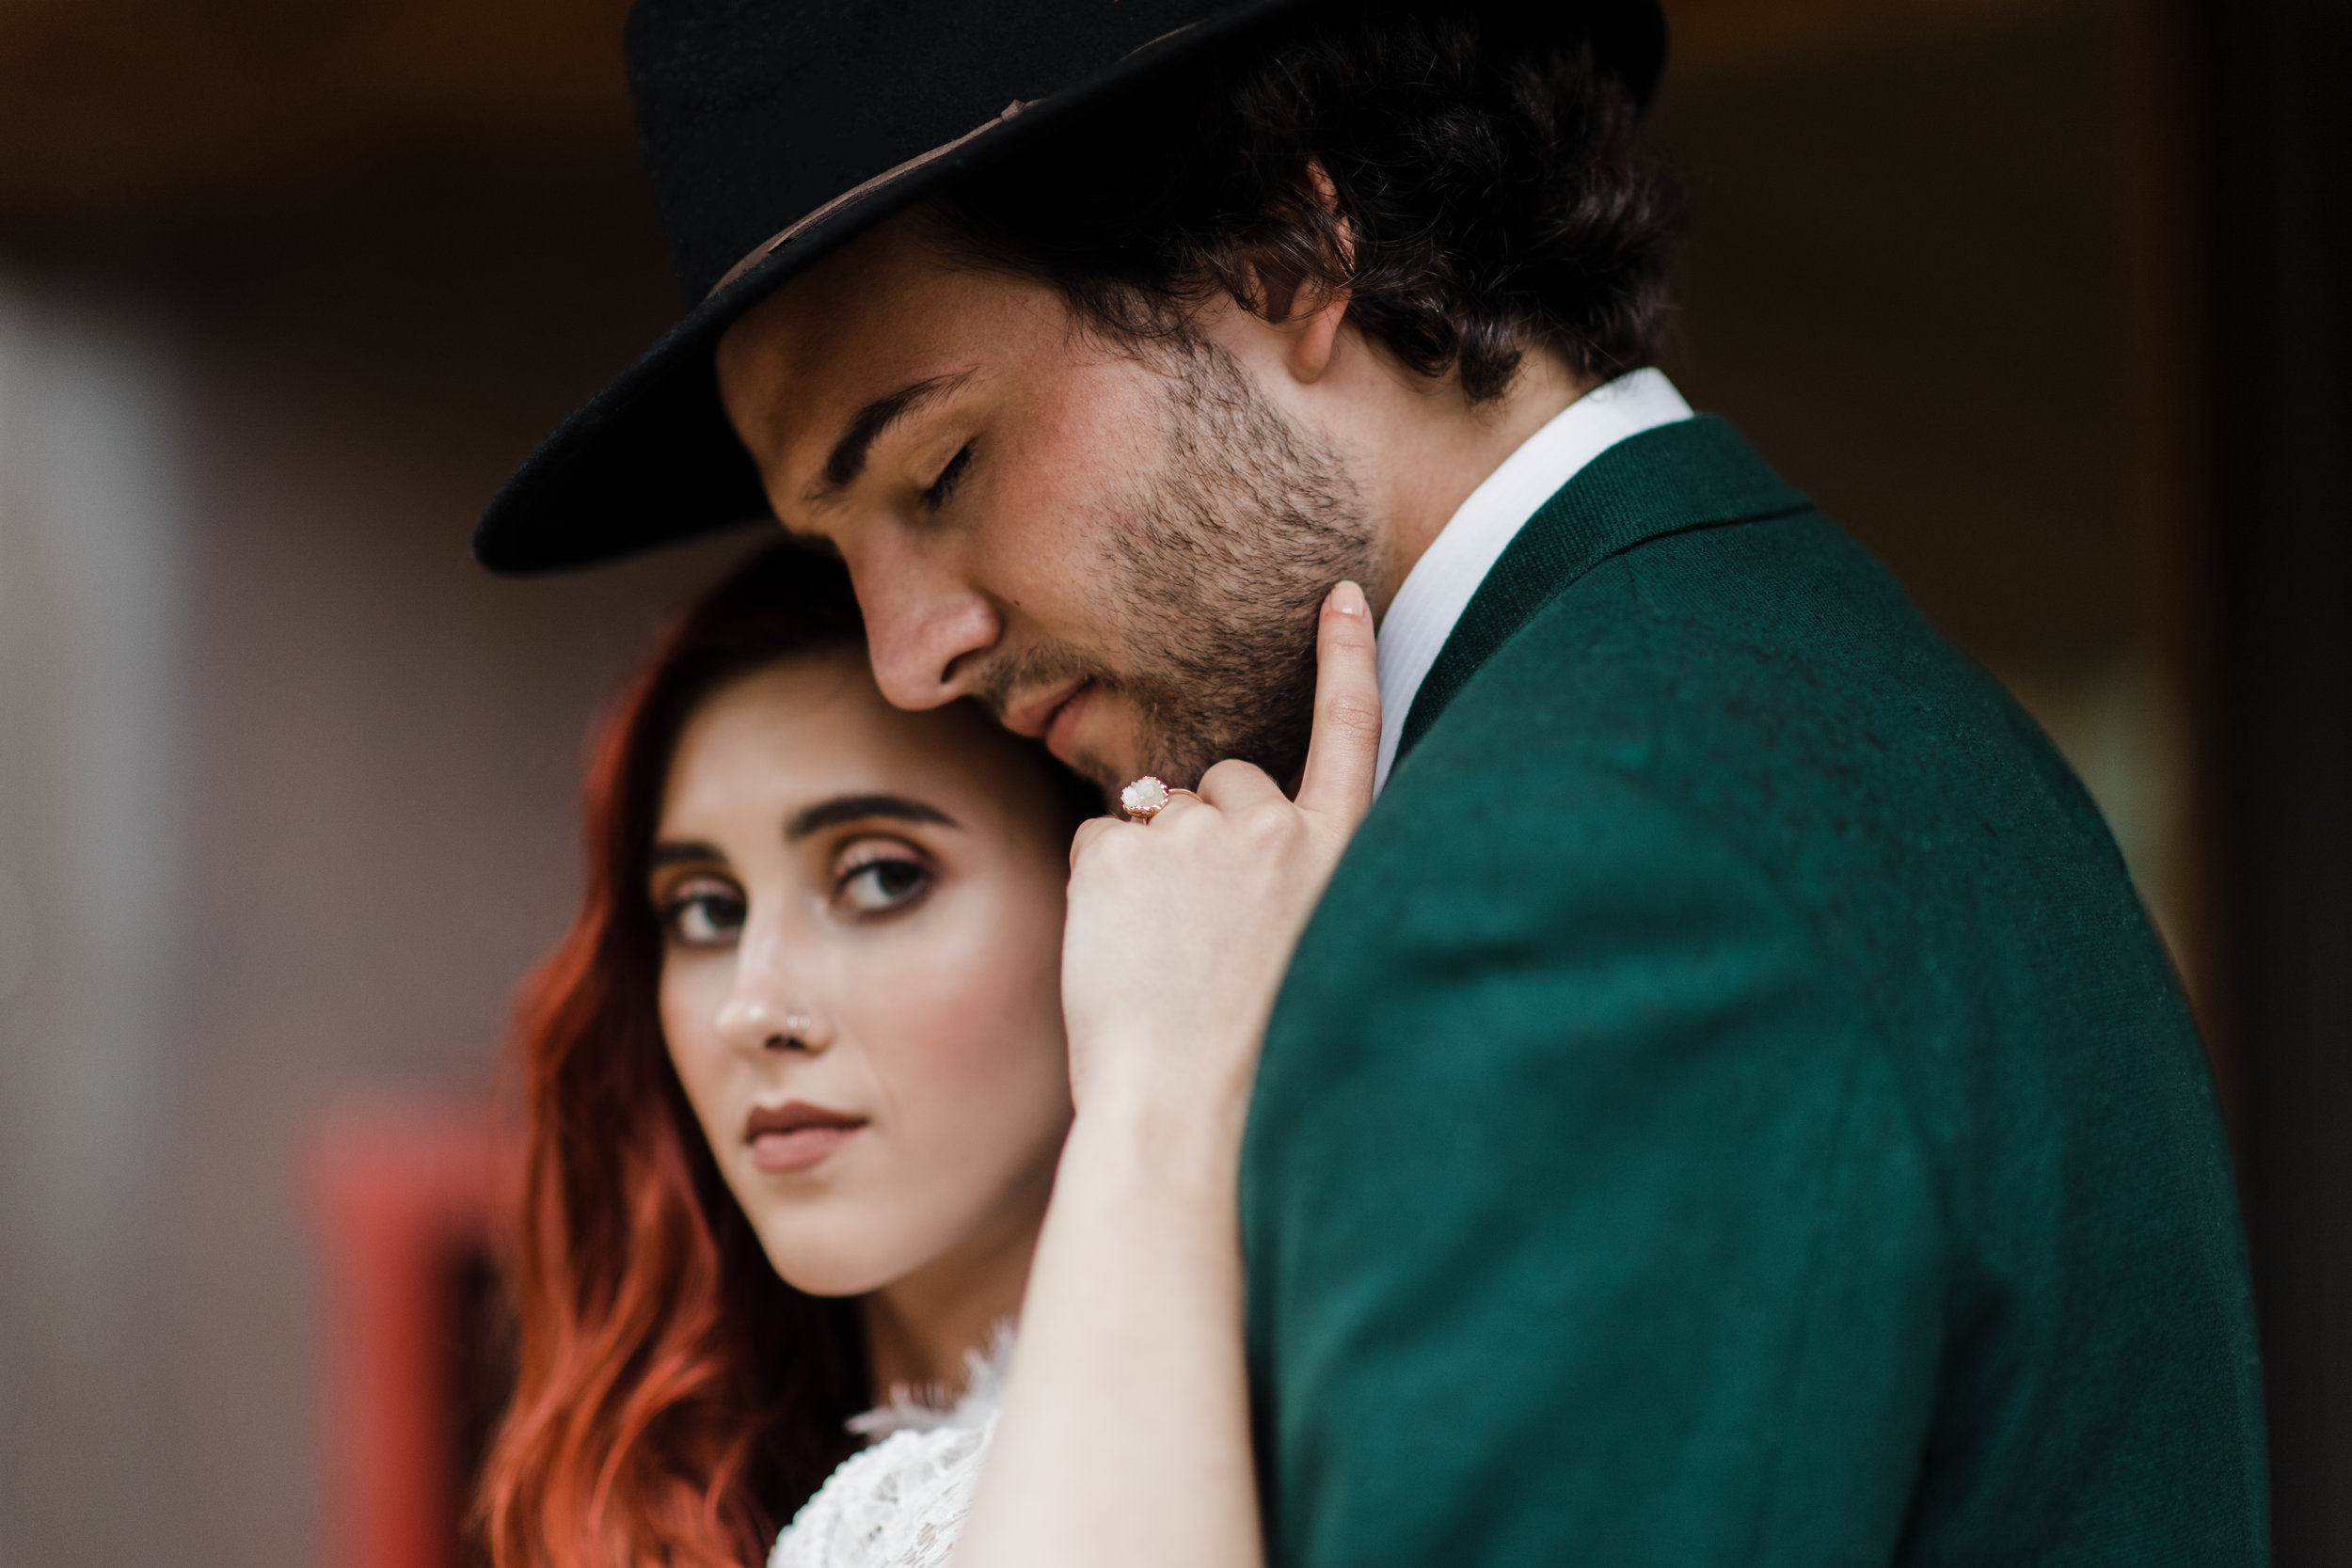 Groom in green jacket and black fedora closes his eyes as bride softly grazes his face with her hand.